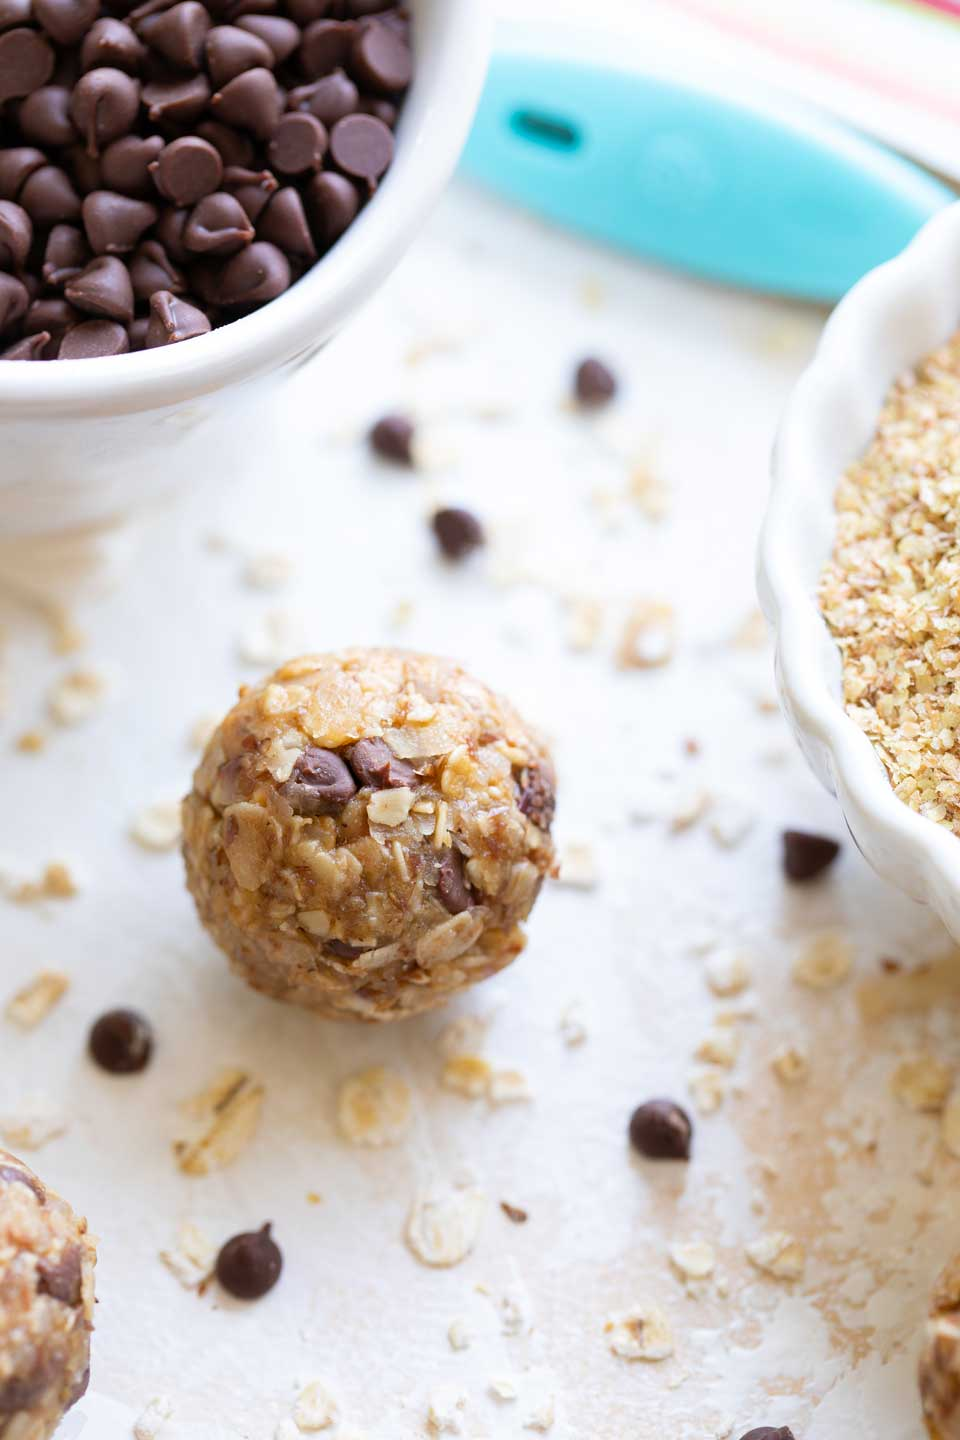 Closeup of one healthy Energy Ball laying between bowls of chocolate chips and wheat germ.